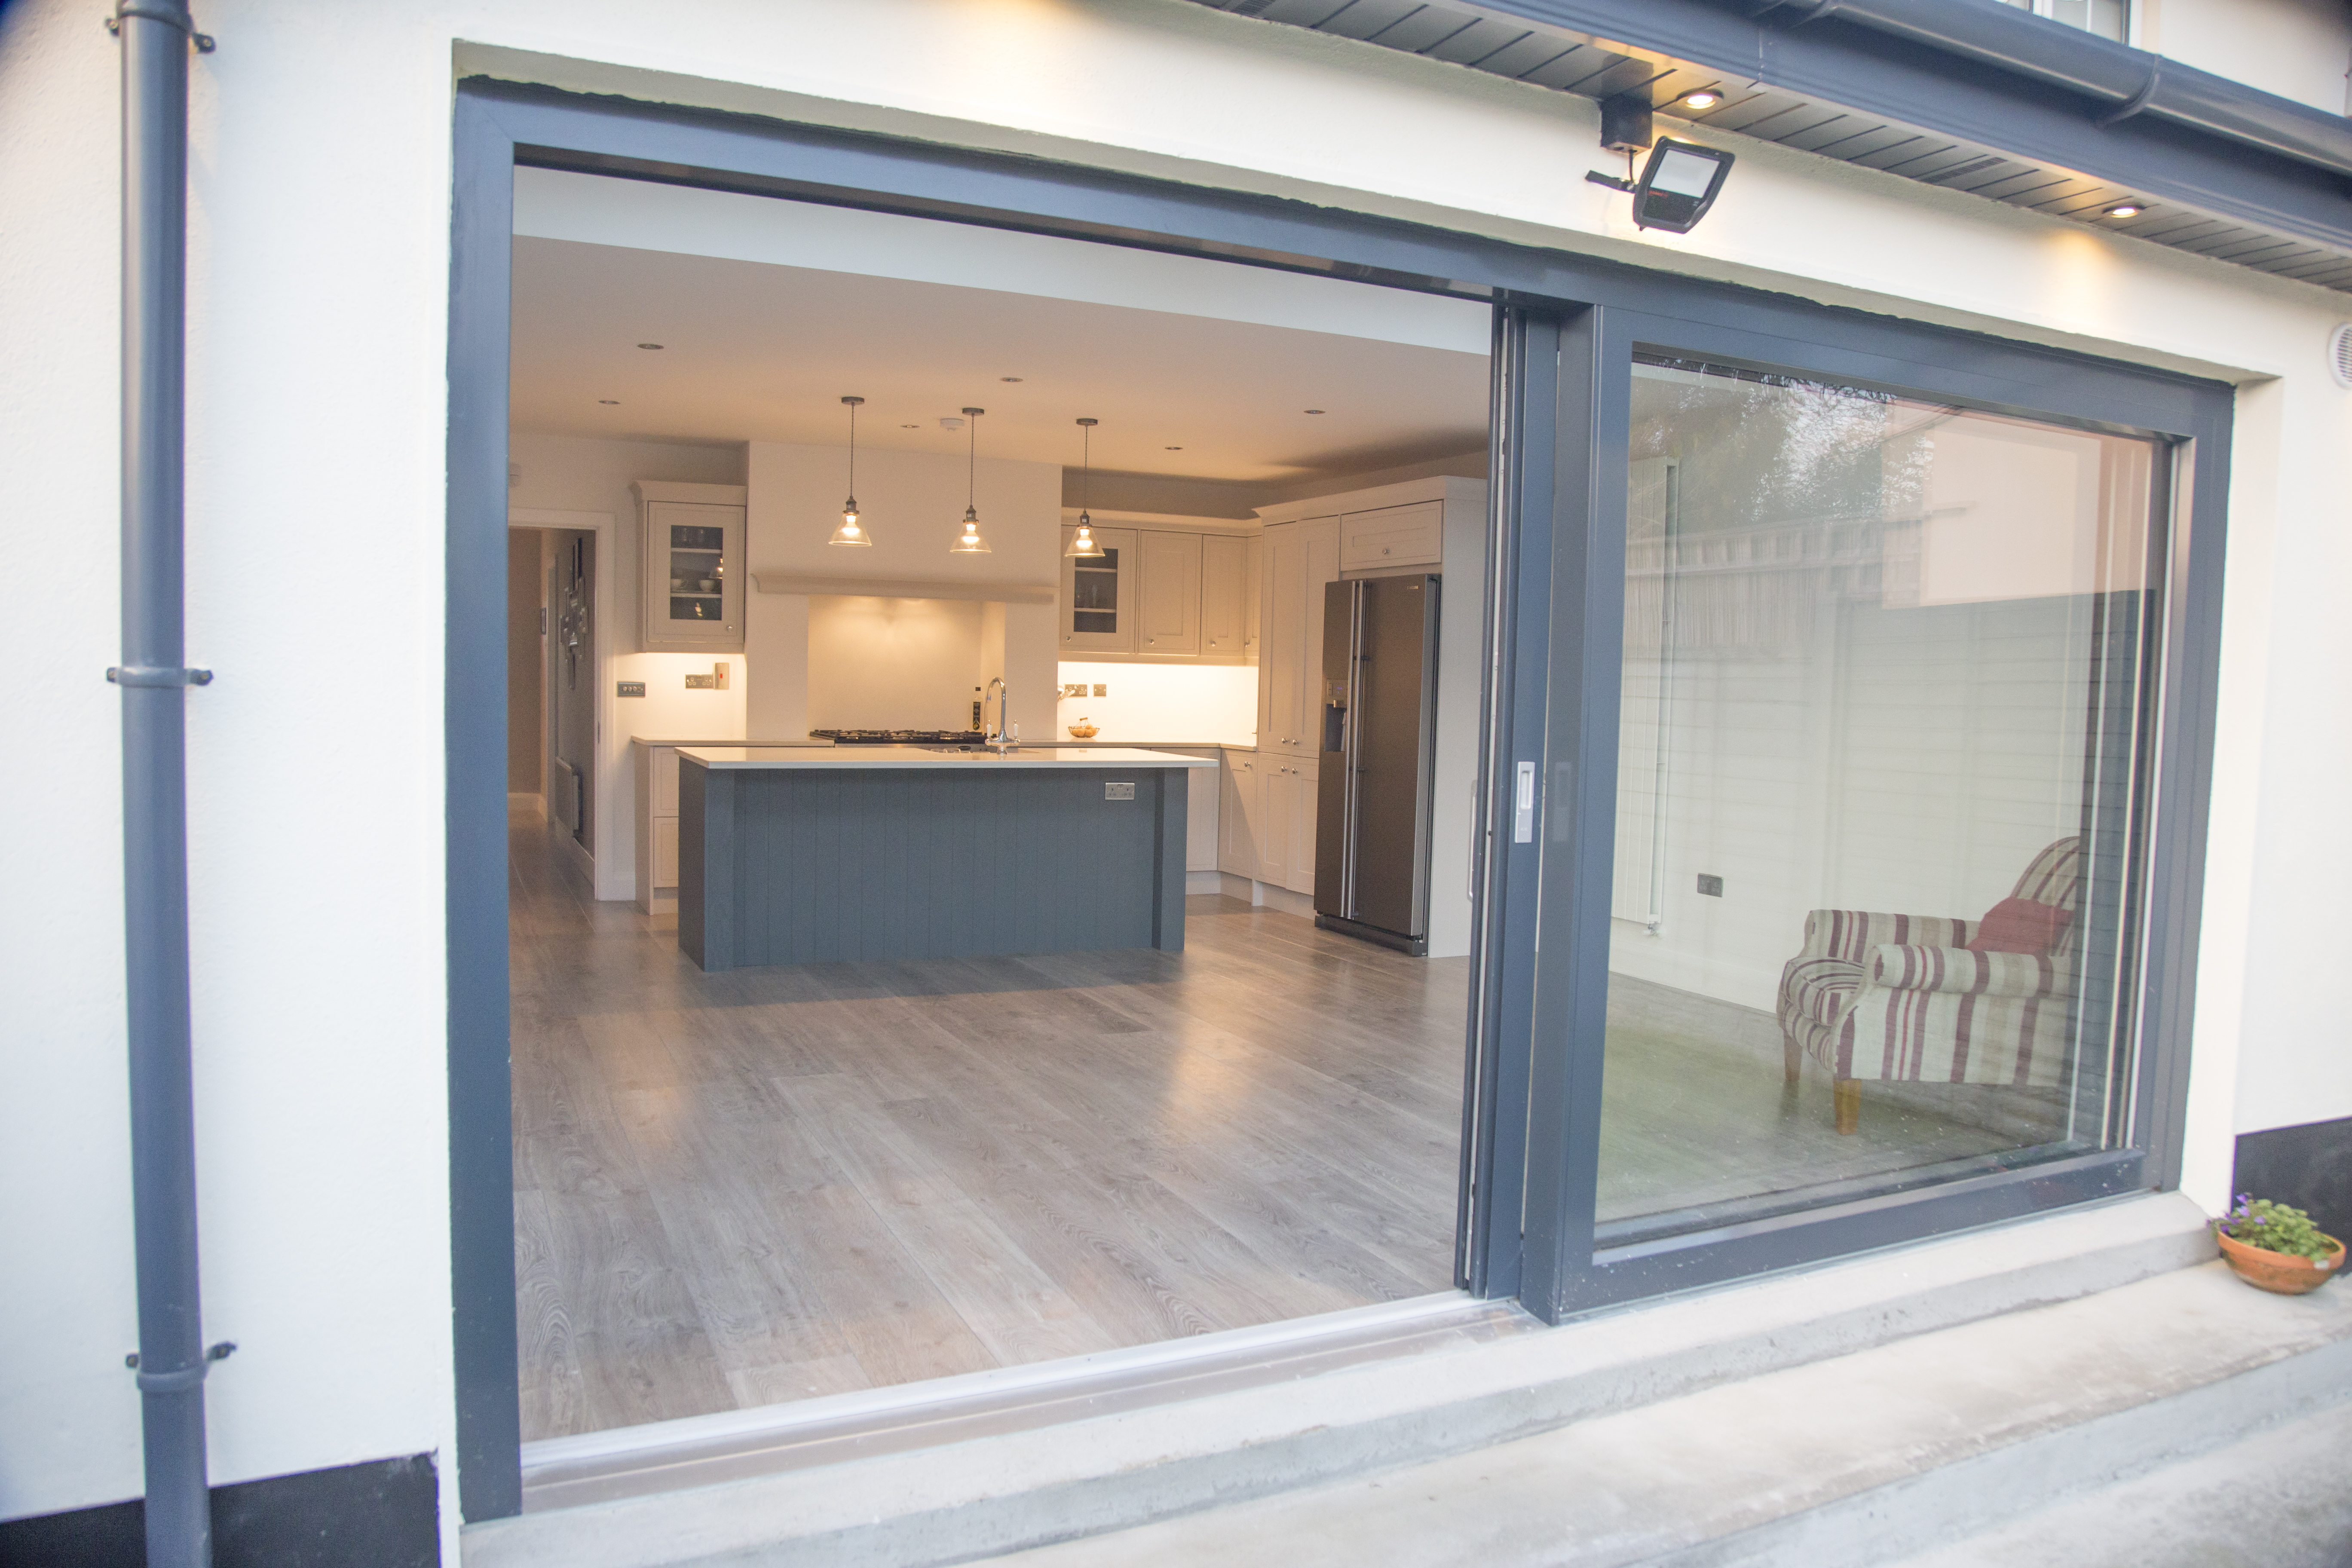 House Extensions Dublin - Increase Home Space & Value